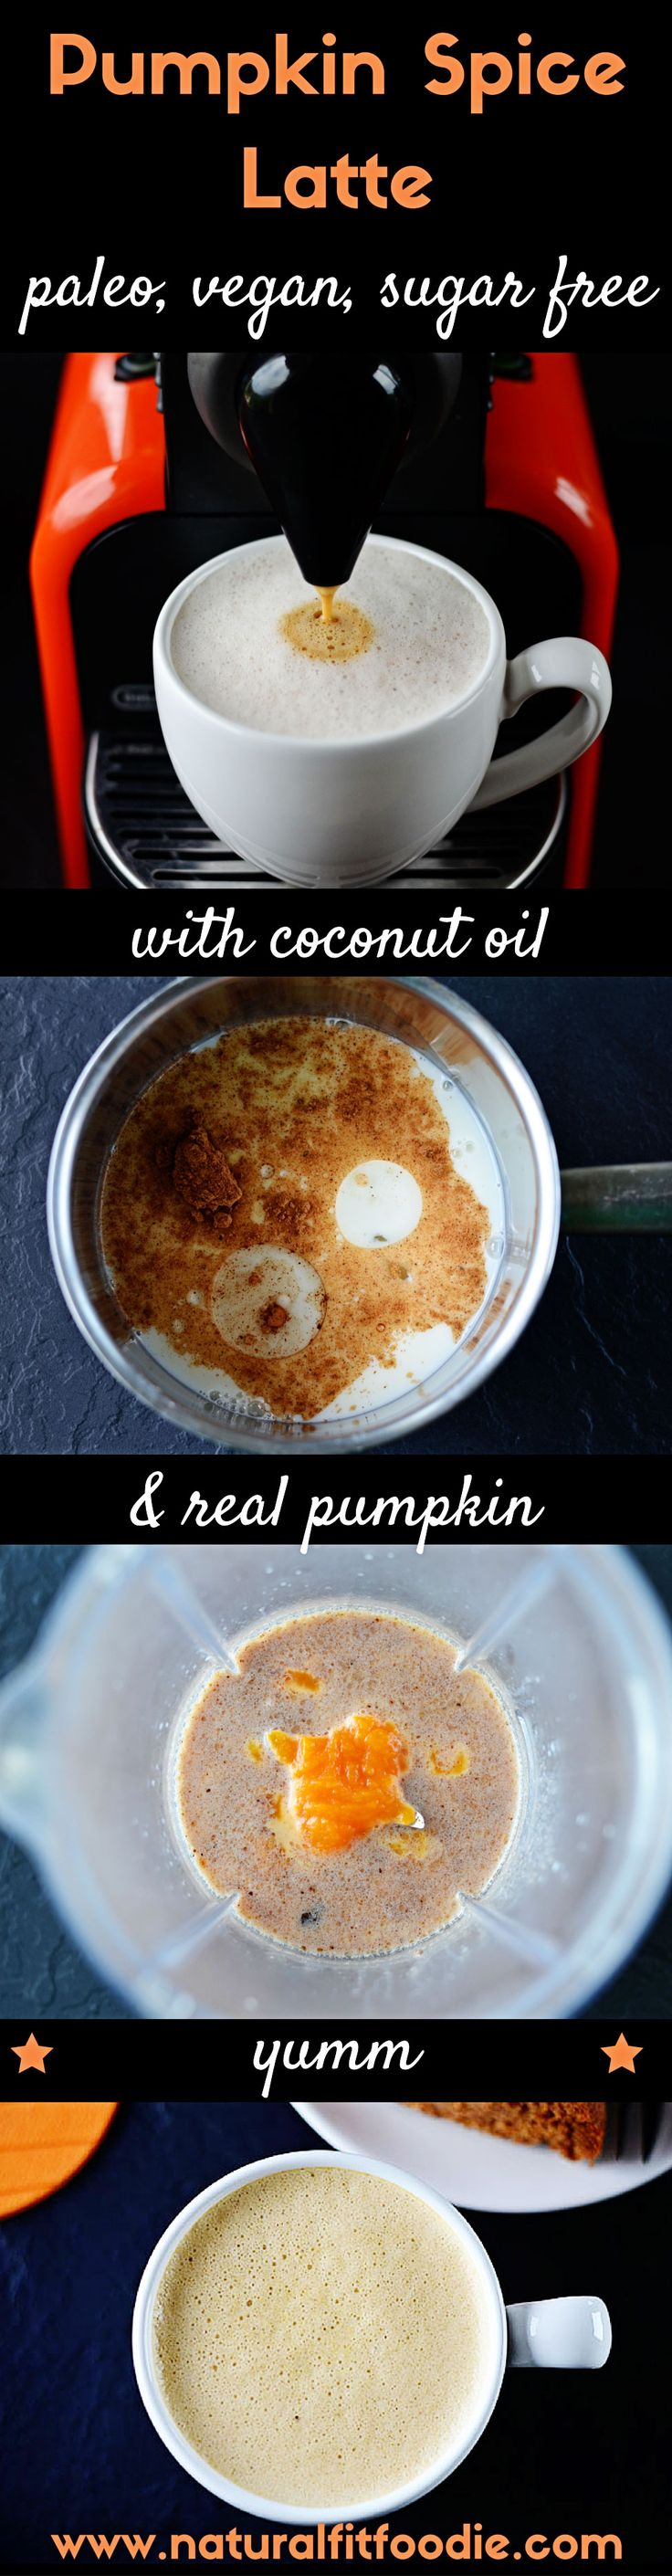 Pumpkin Spice Latte - A delicious warming pumpkin spice latte made with coconut oil, real pumpkin and homemade pumpkin spice mix. This pumpkin spice latte is real food at its best!